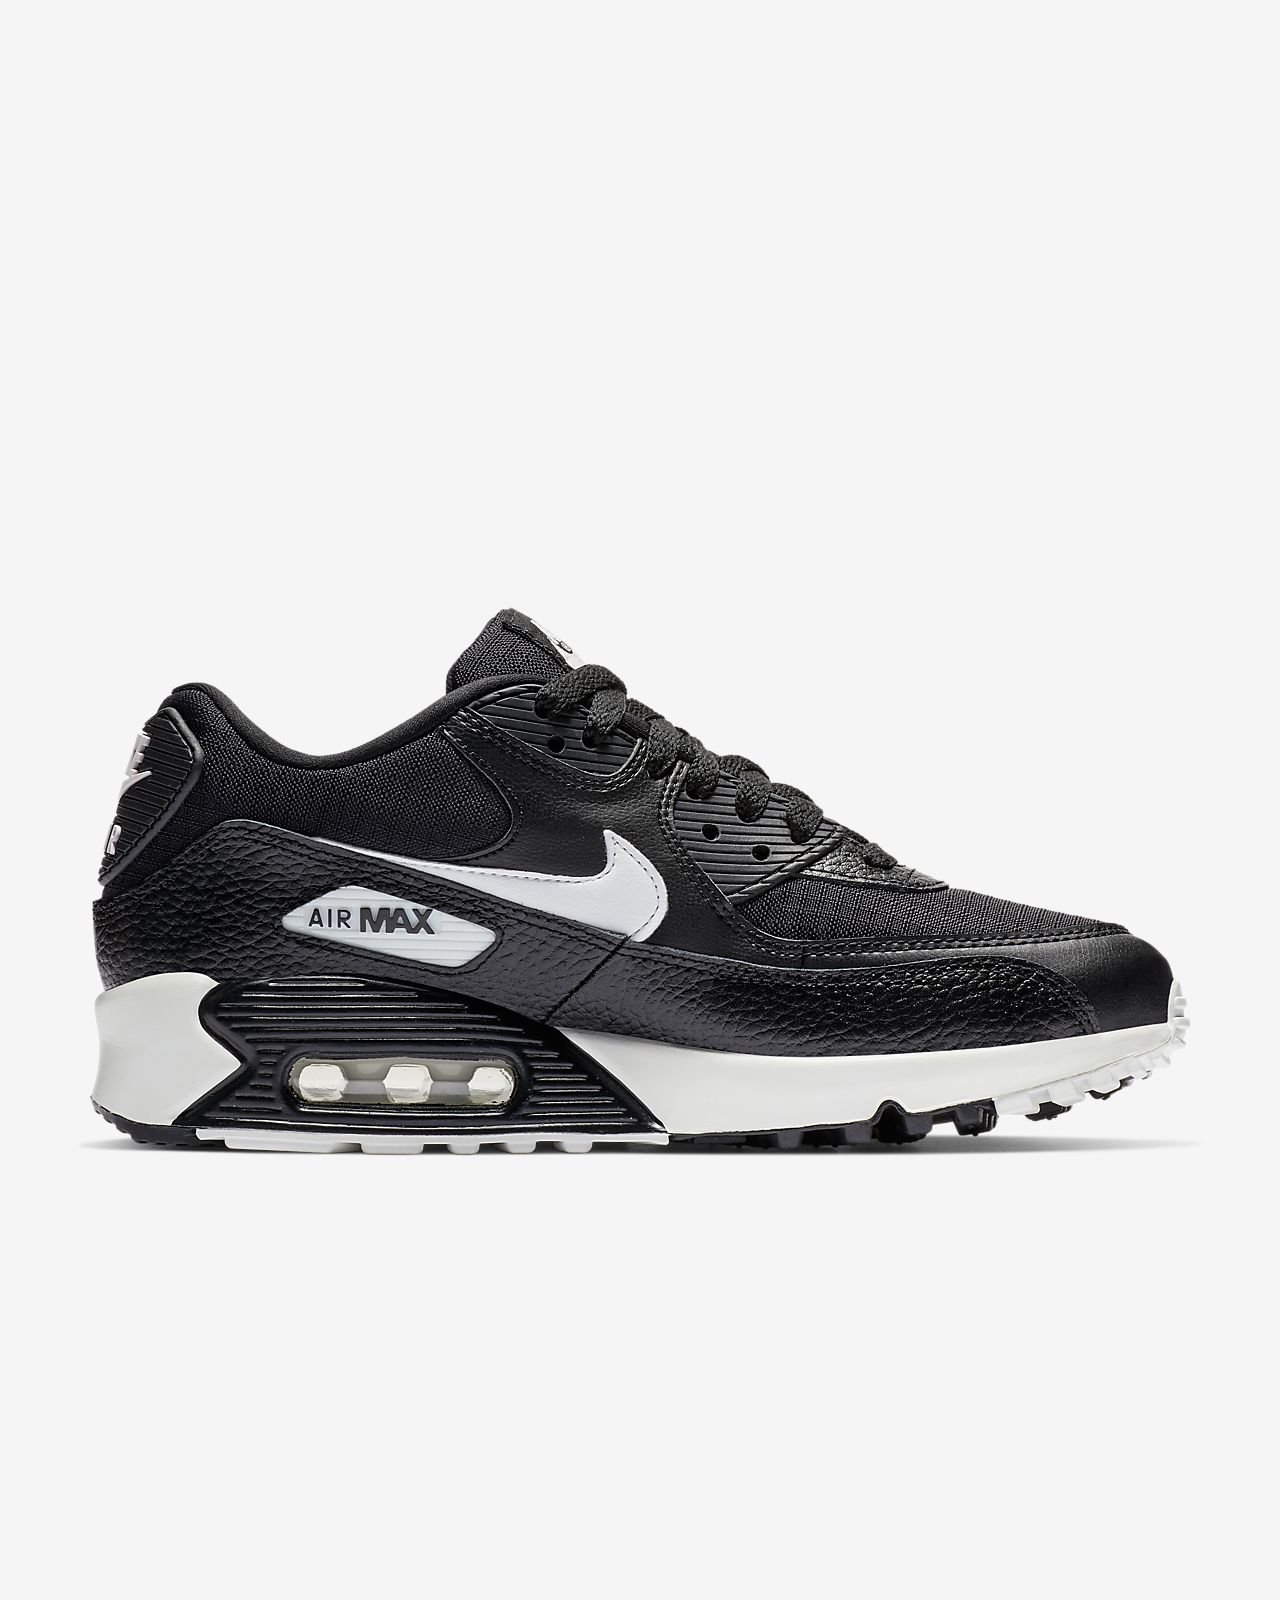 new style 0eac7 fe9f5 ... Nike Air Max 90 Women s Shoe